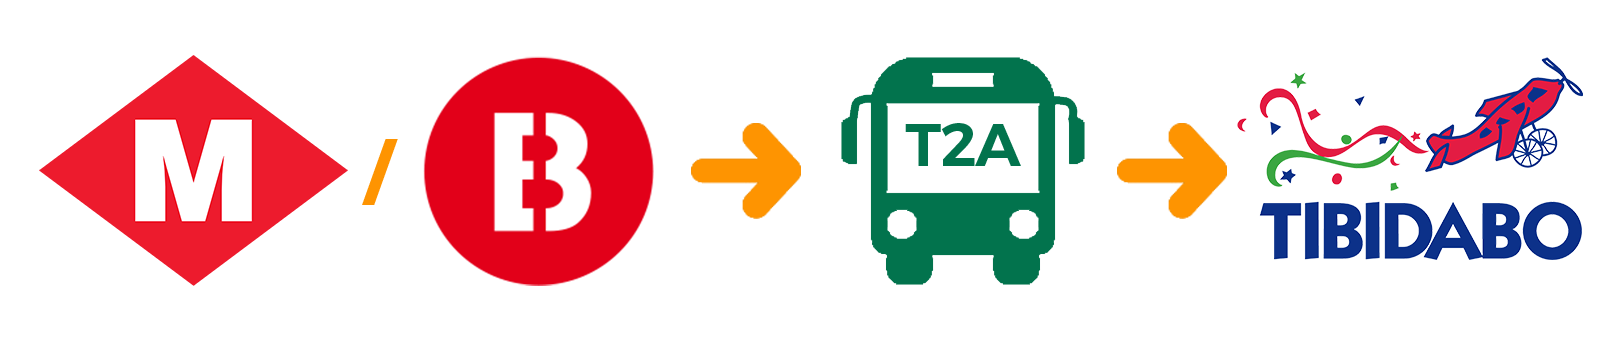 How to get to T2A